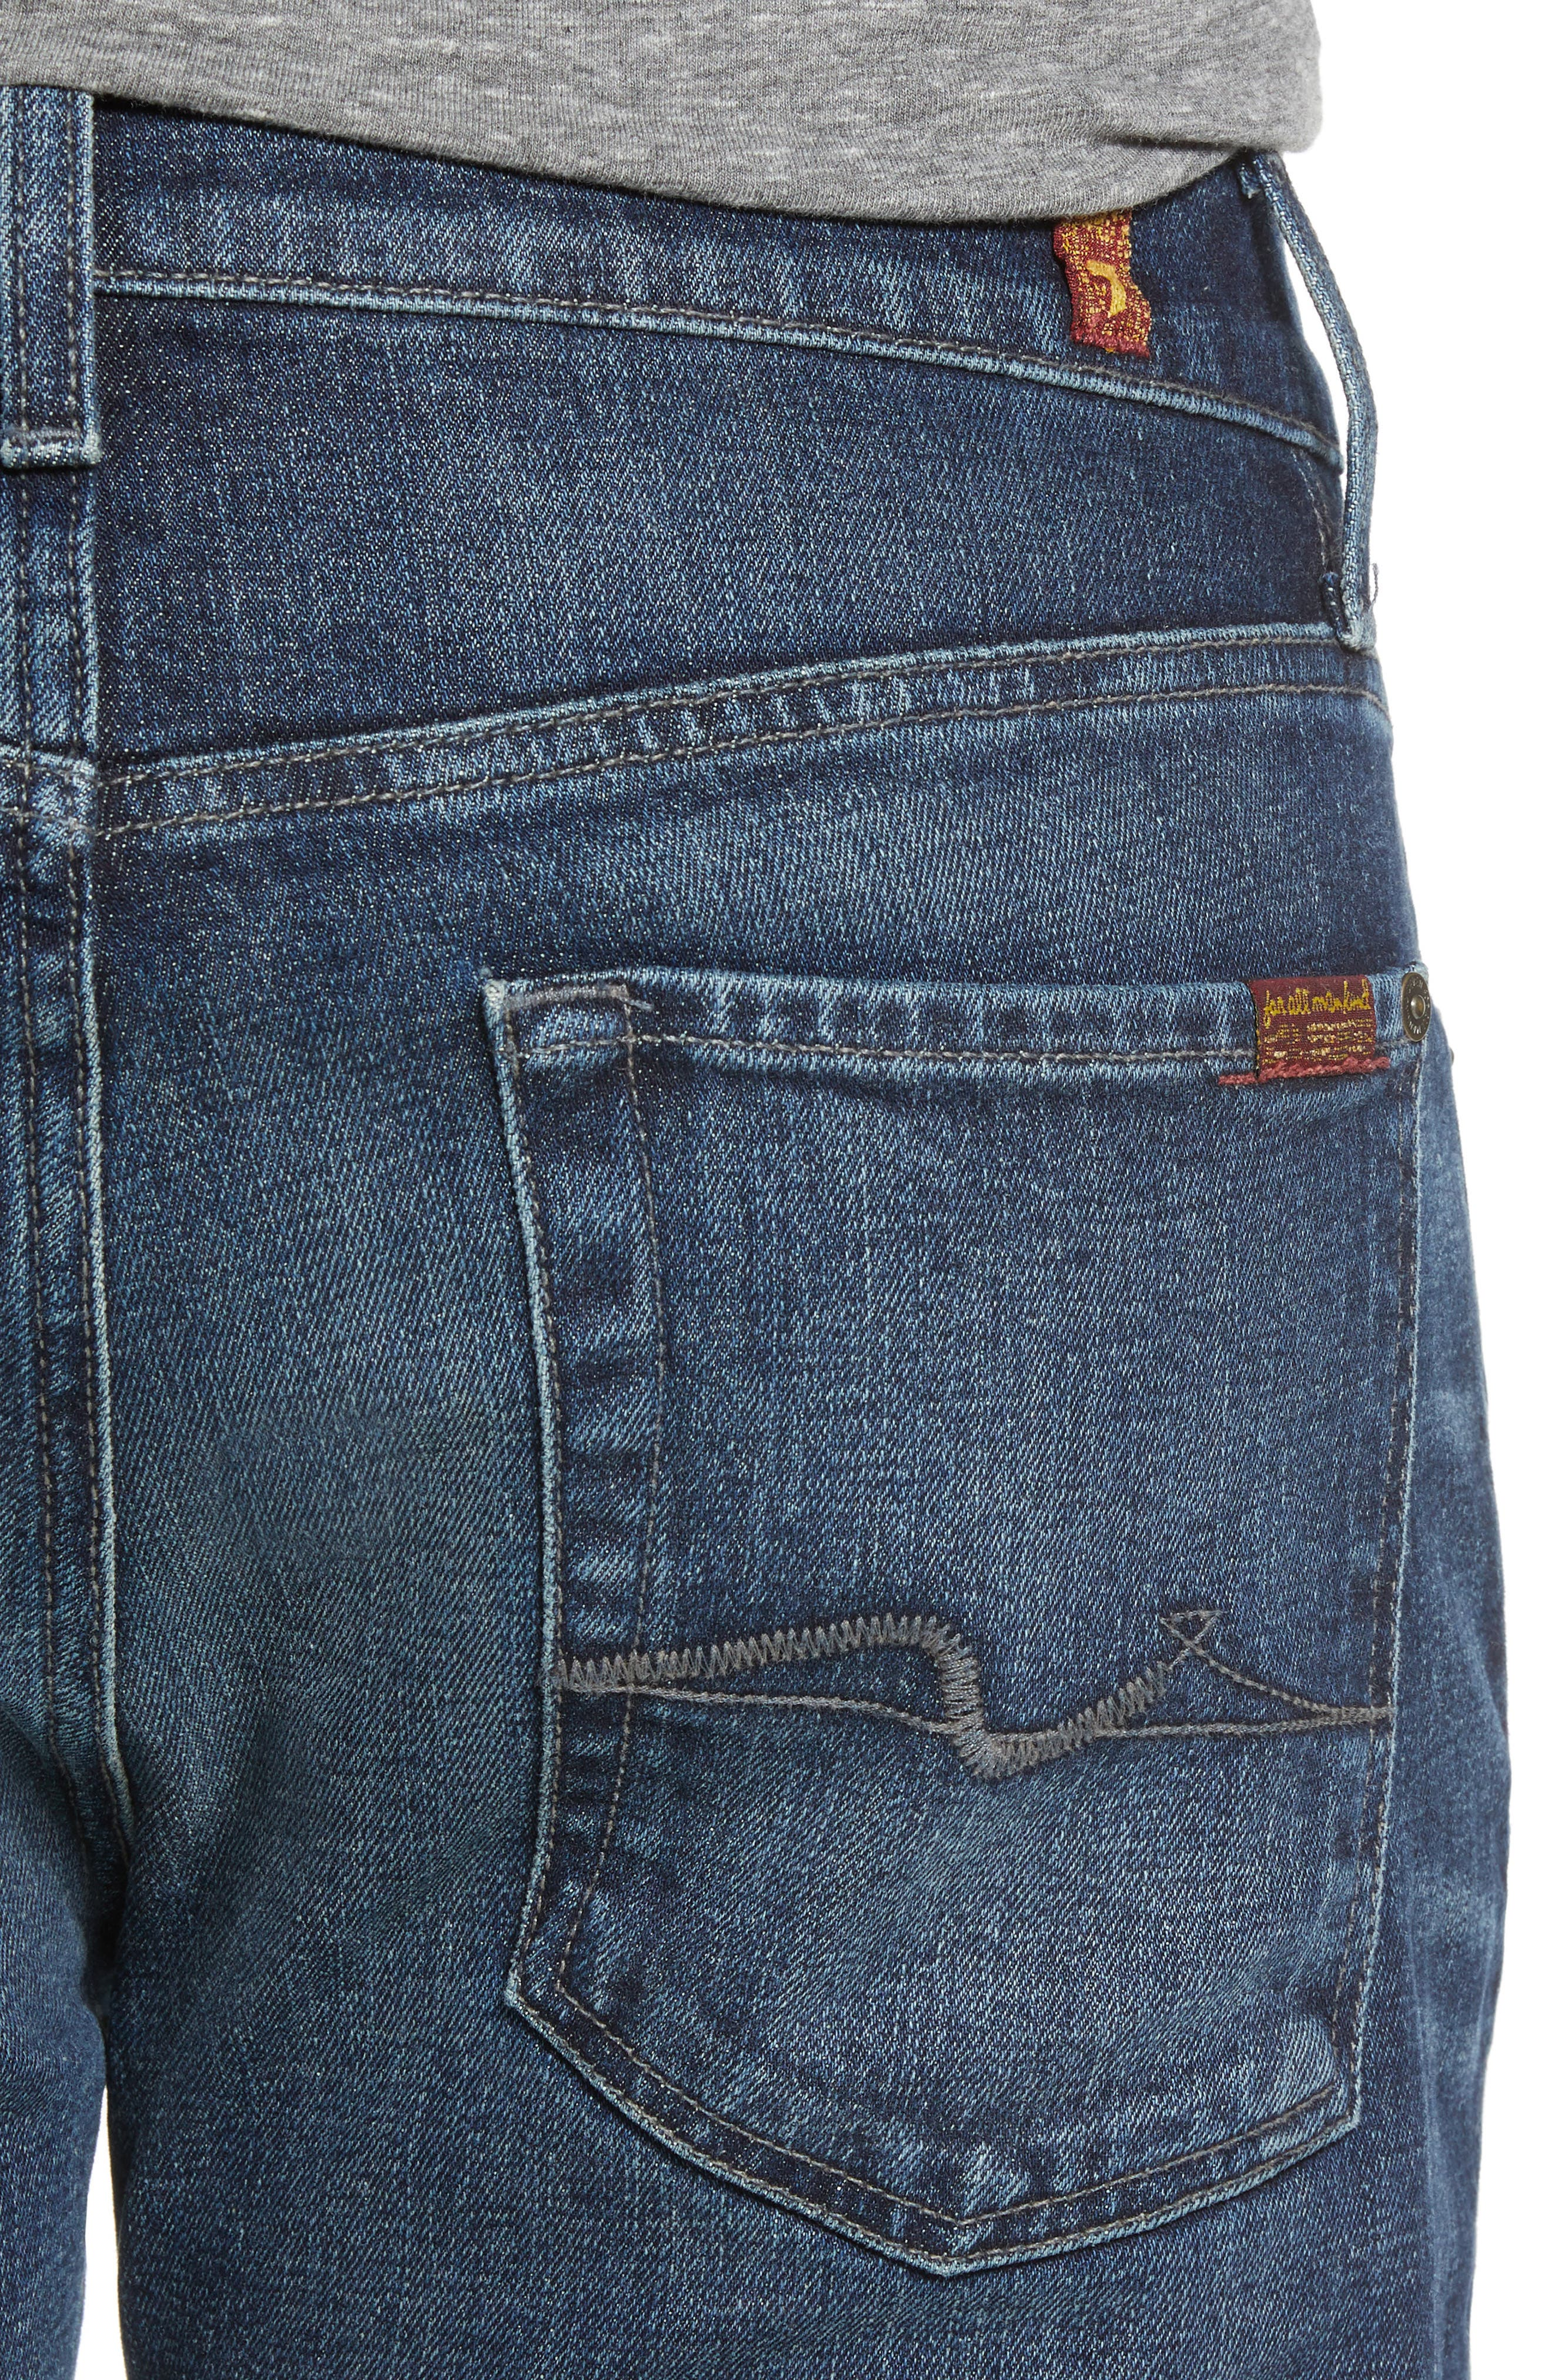 Austyn Relaxed Fit Jeans,                             Alternate thumbnail 4, color,                             Untouchable